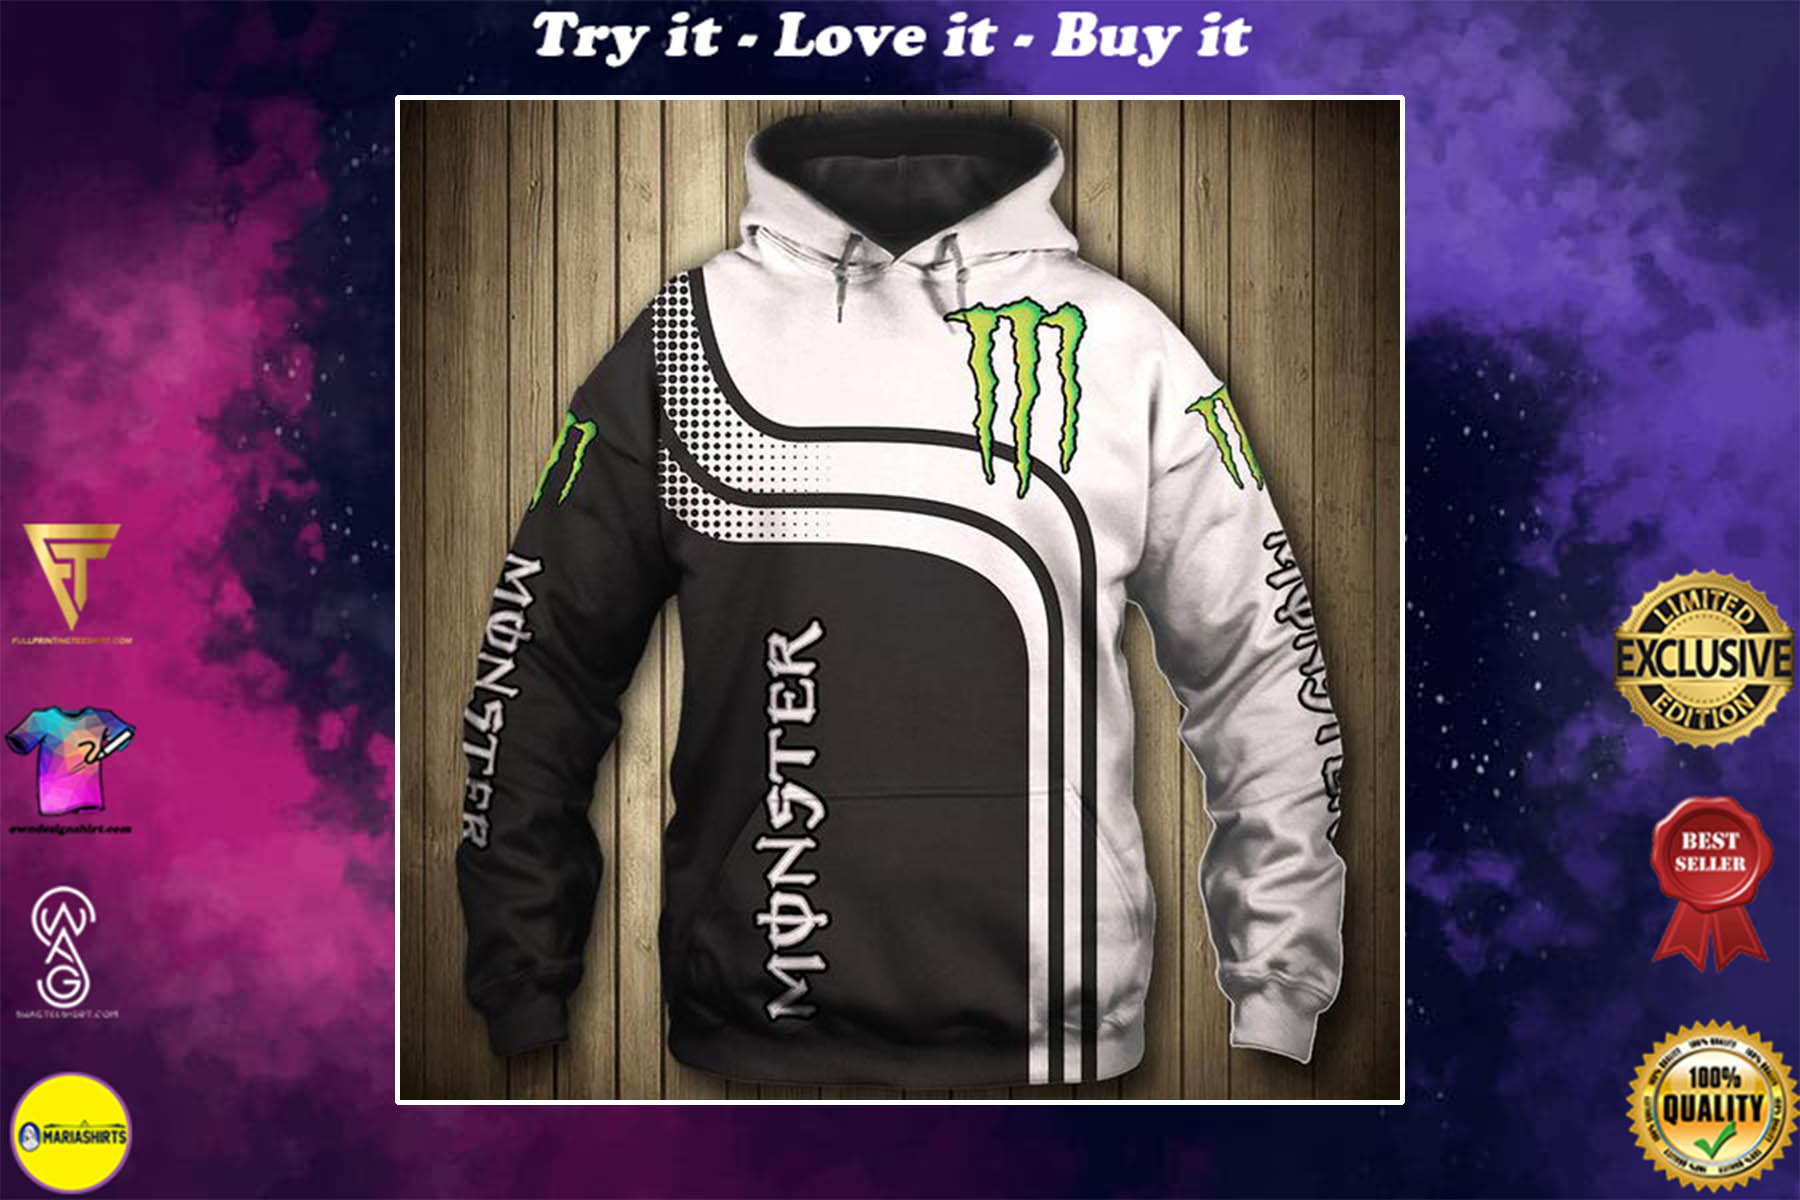 [special edition] the monster energy symbol full printing shirt - maria